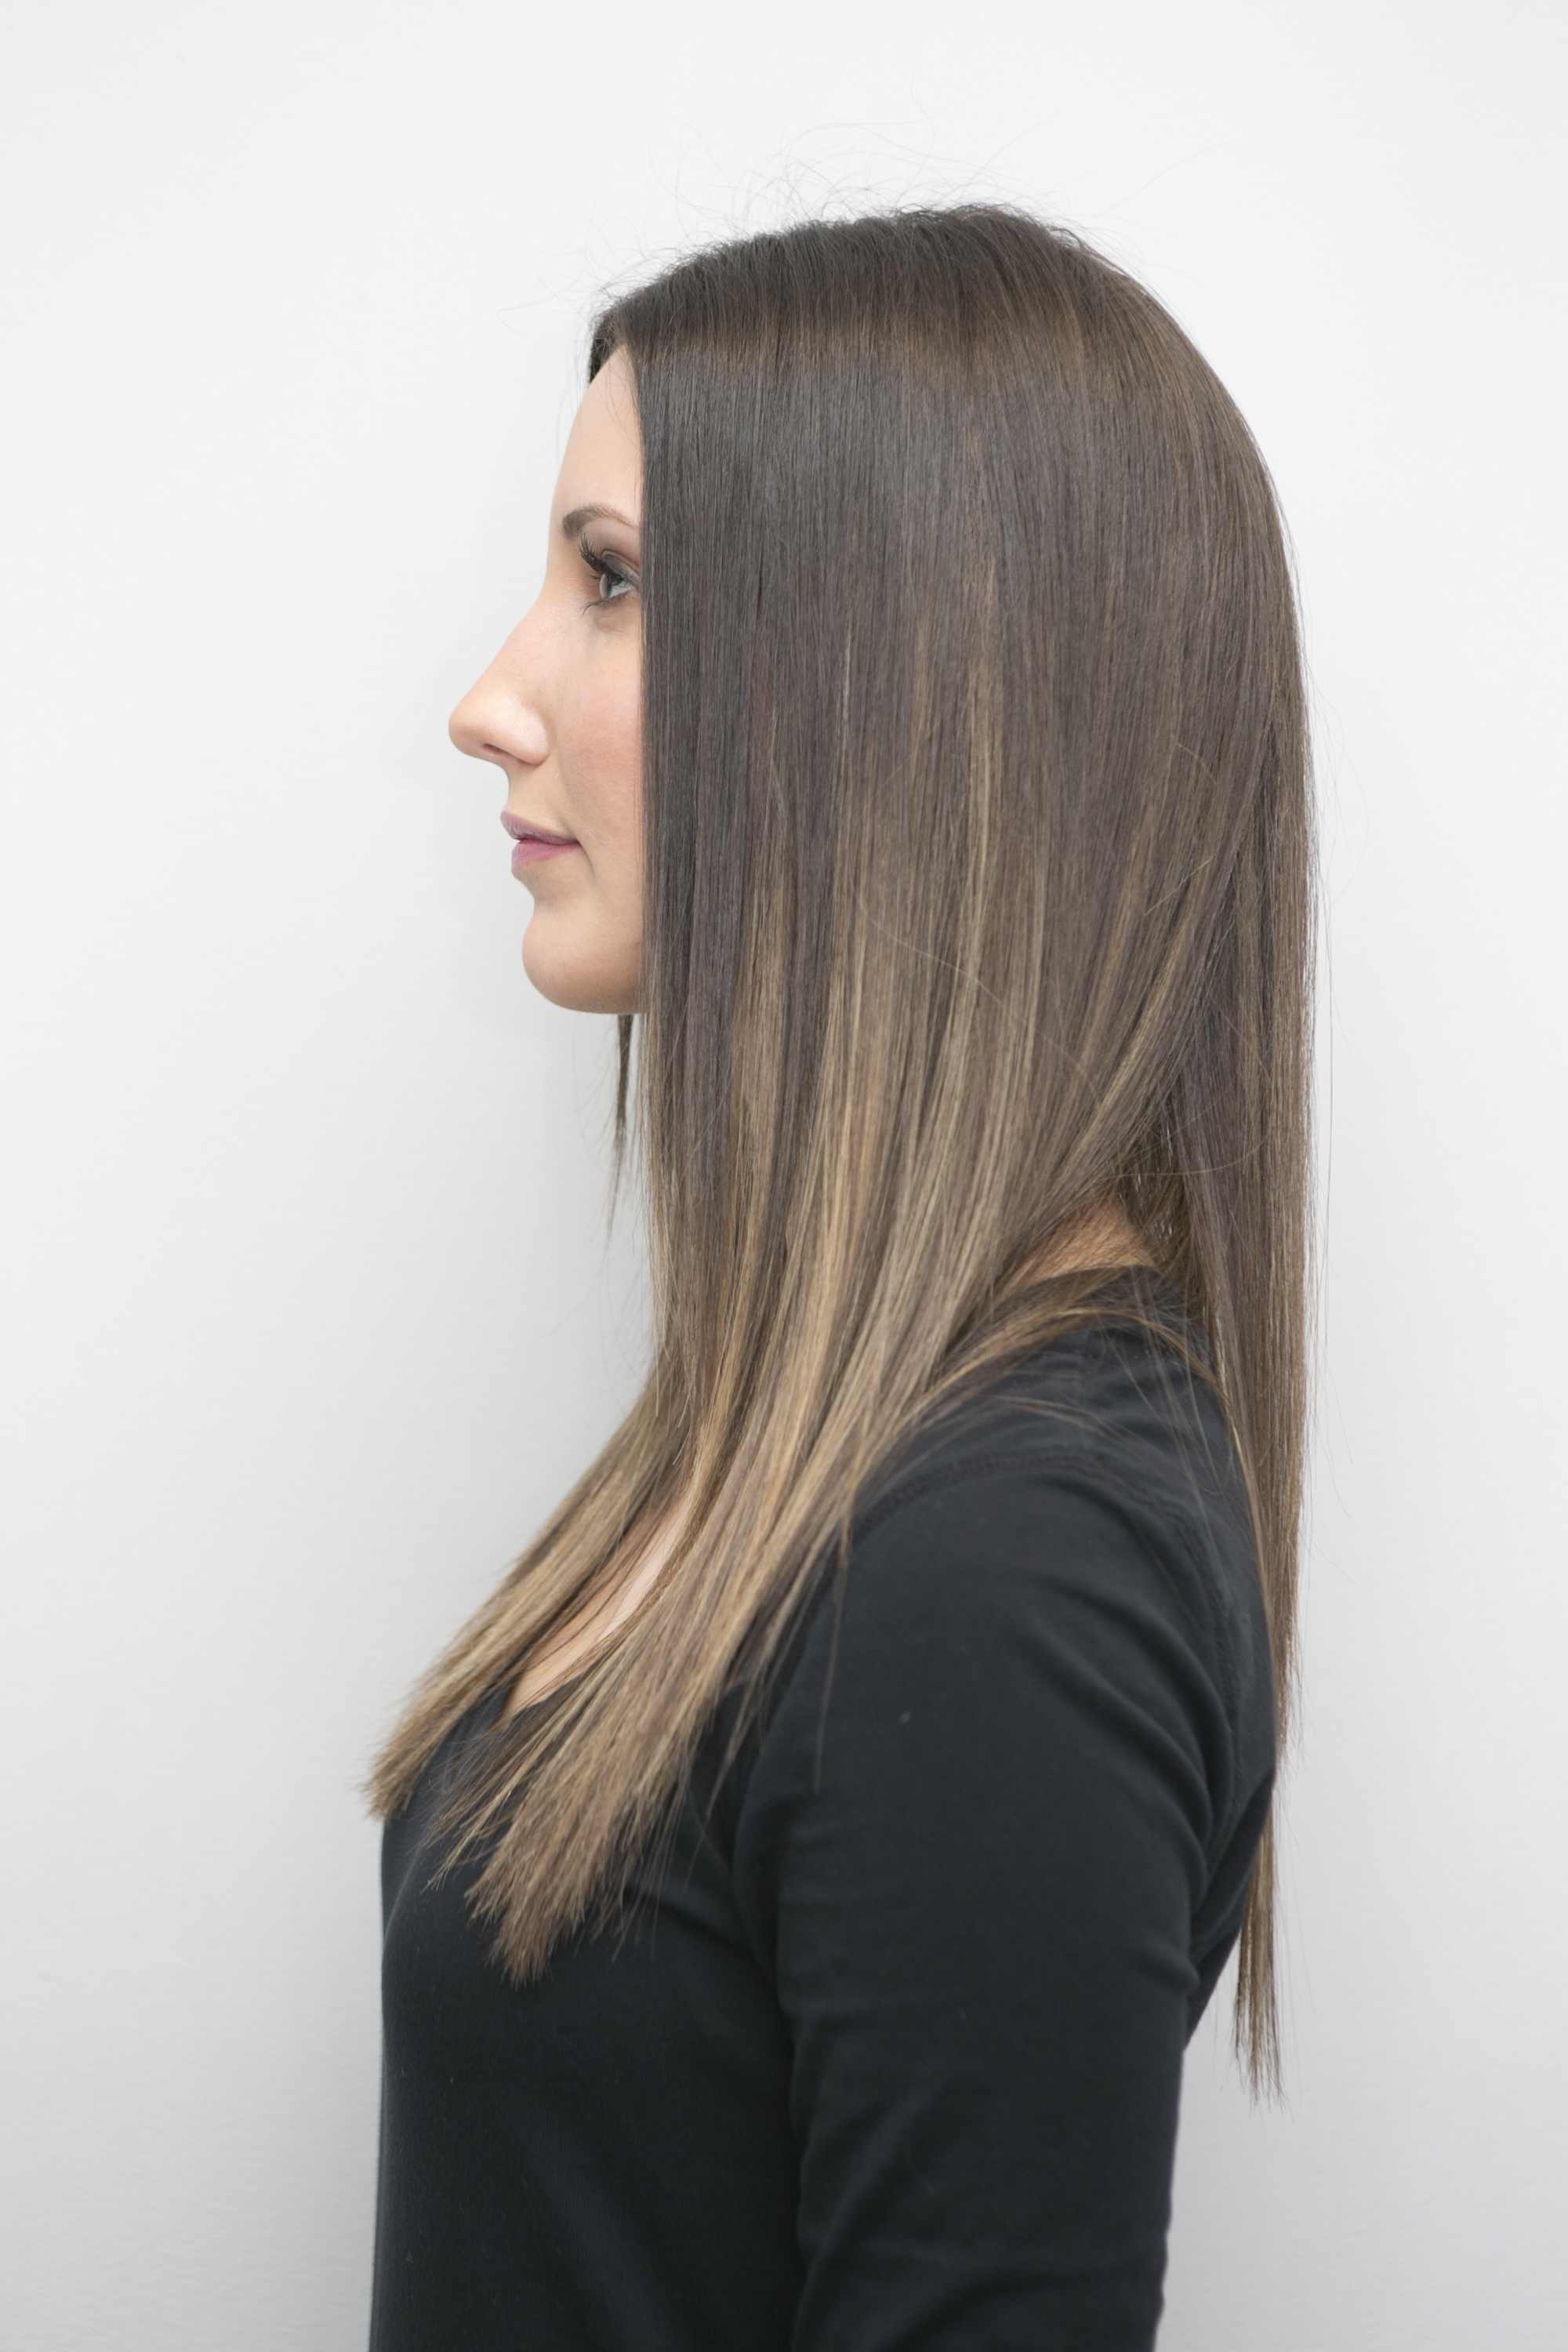 The balyage technique can be used to create ombré color effects.